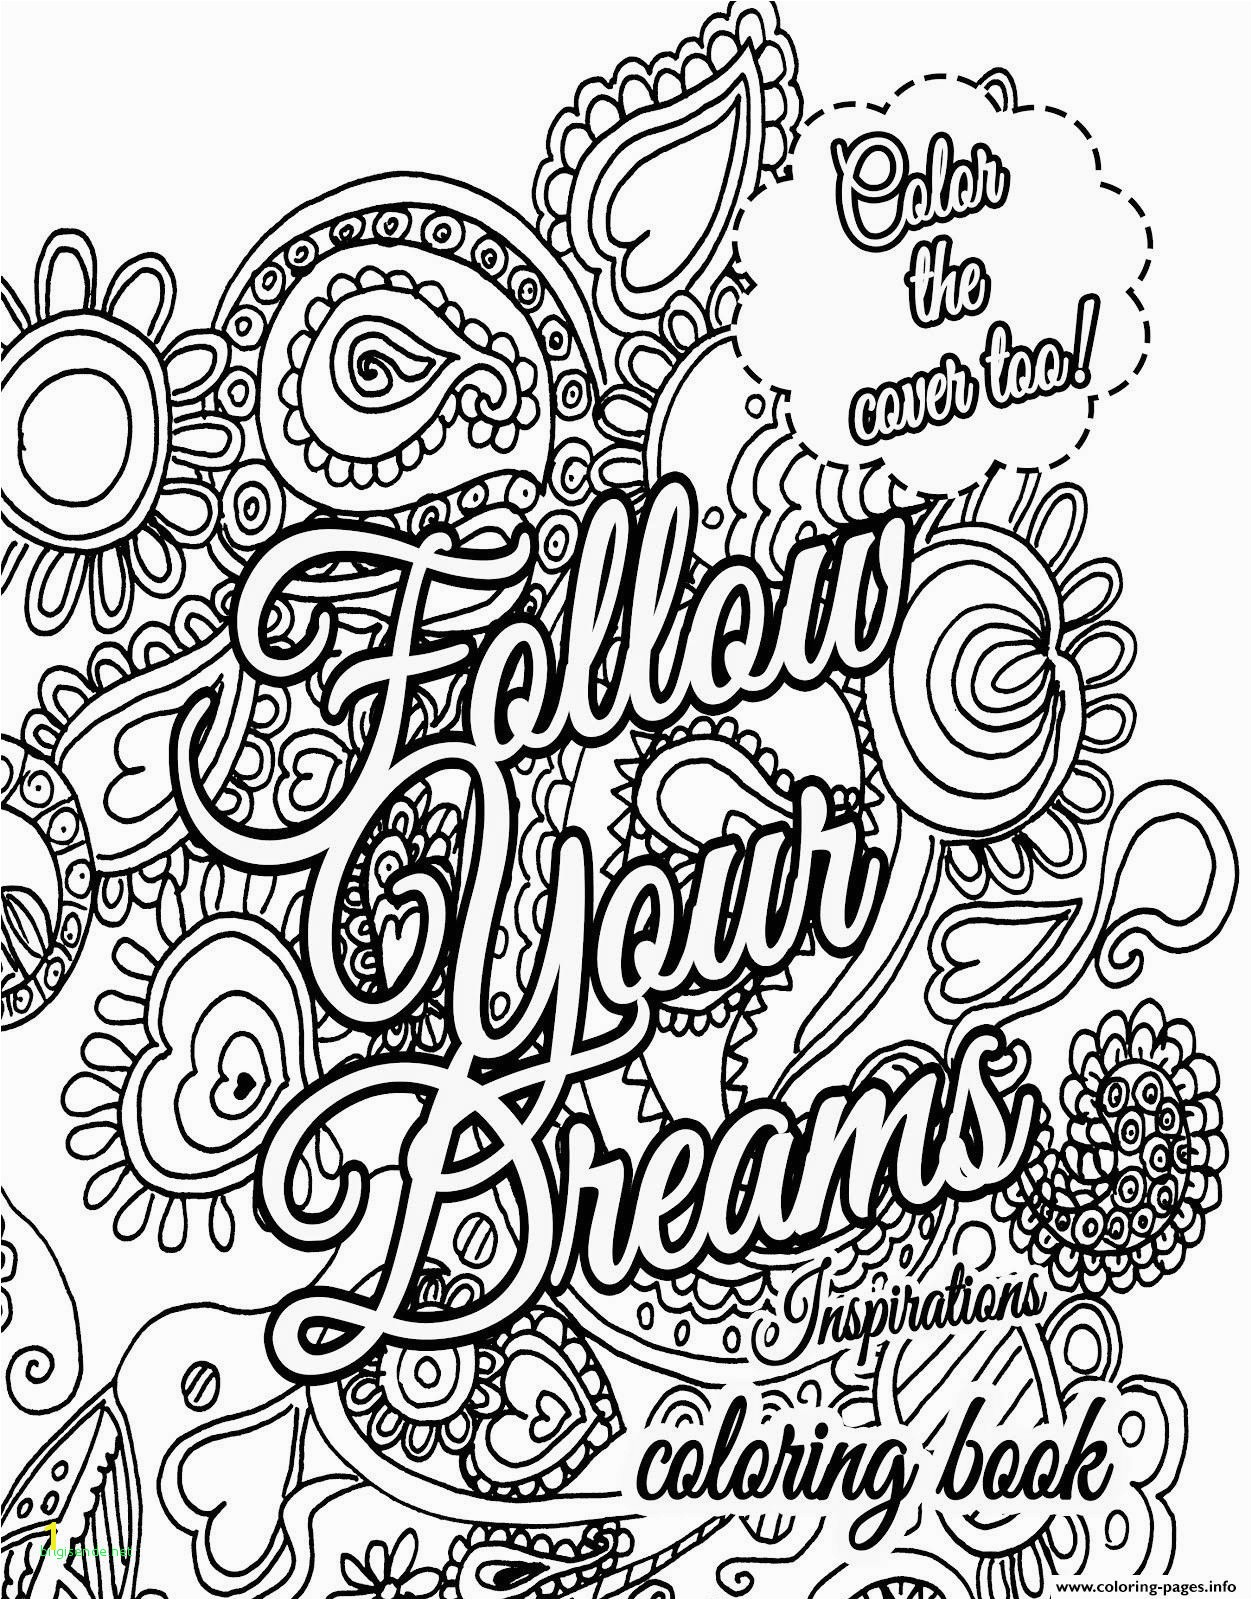 Free Printable Coloring Pages for Girls Inspirational Sayings Best 28 Collection Inspirational Coloring Pages for